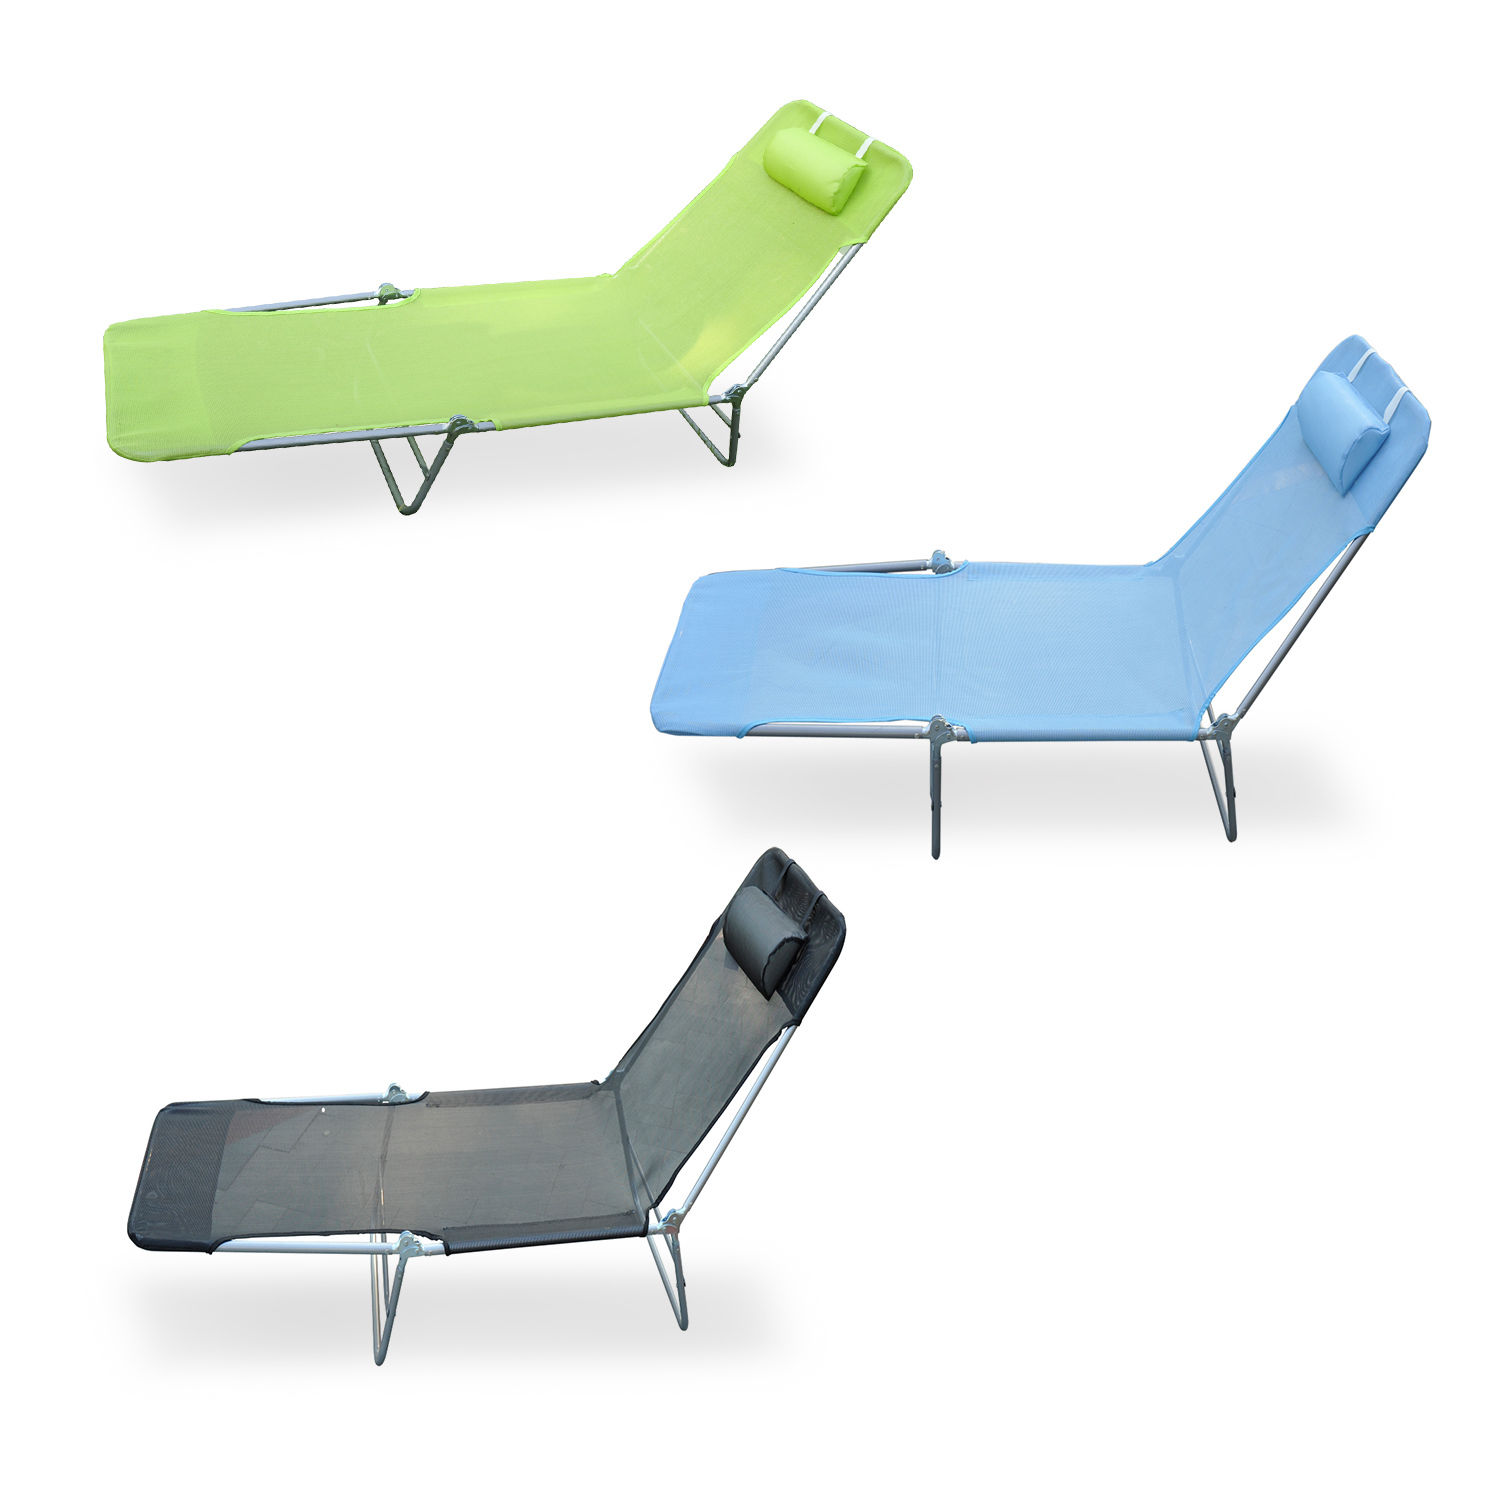 outdoor folding lounge chairs grey upholstered dining chair reclining beach sun patio chaise pool details about lawn lounger